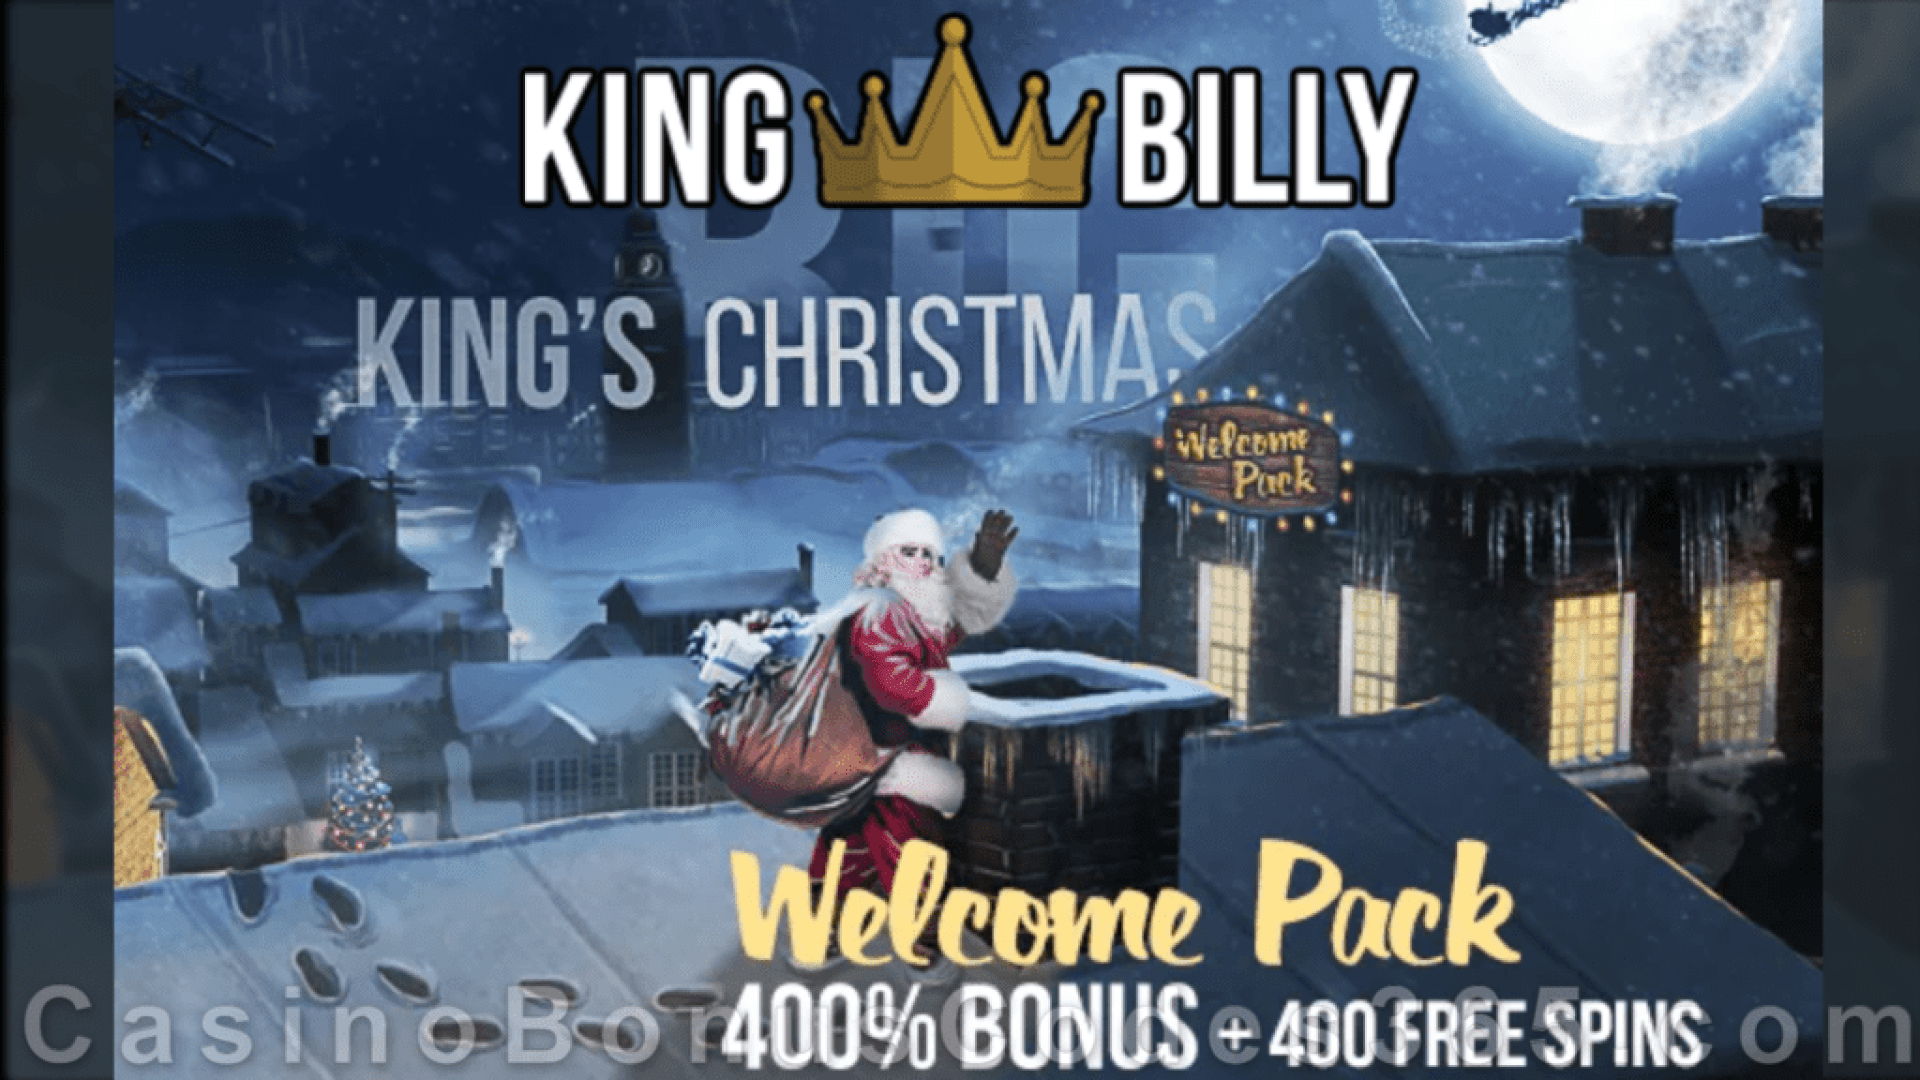 King Billy Casino BIG King's Christmas 400% Match Bonus plus 400 FREE Spins on top Welcome Pack Play n Go Merry Xmas Betsoft A Christmas Carol